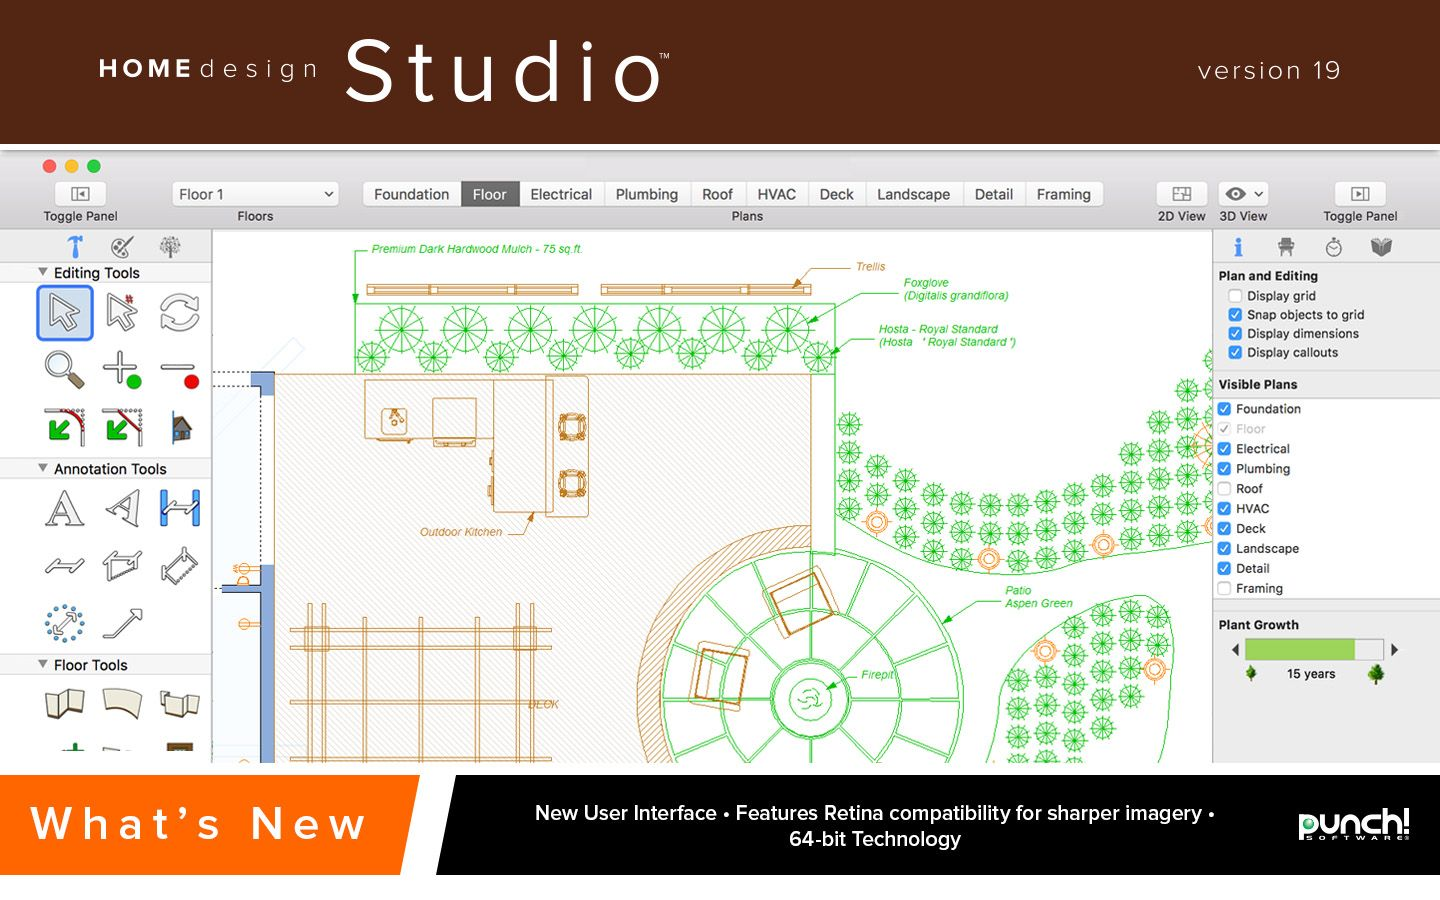 Punch! Home Design Studio for Mac v19 [Download] | Software ...